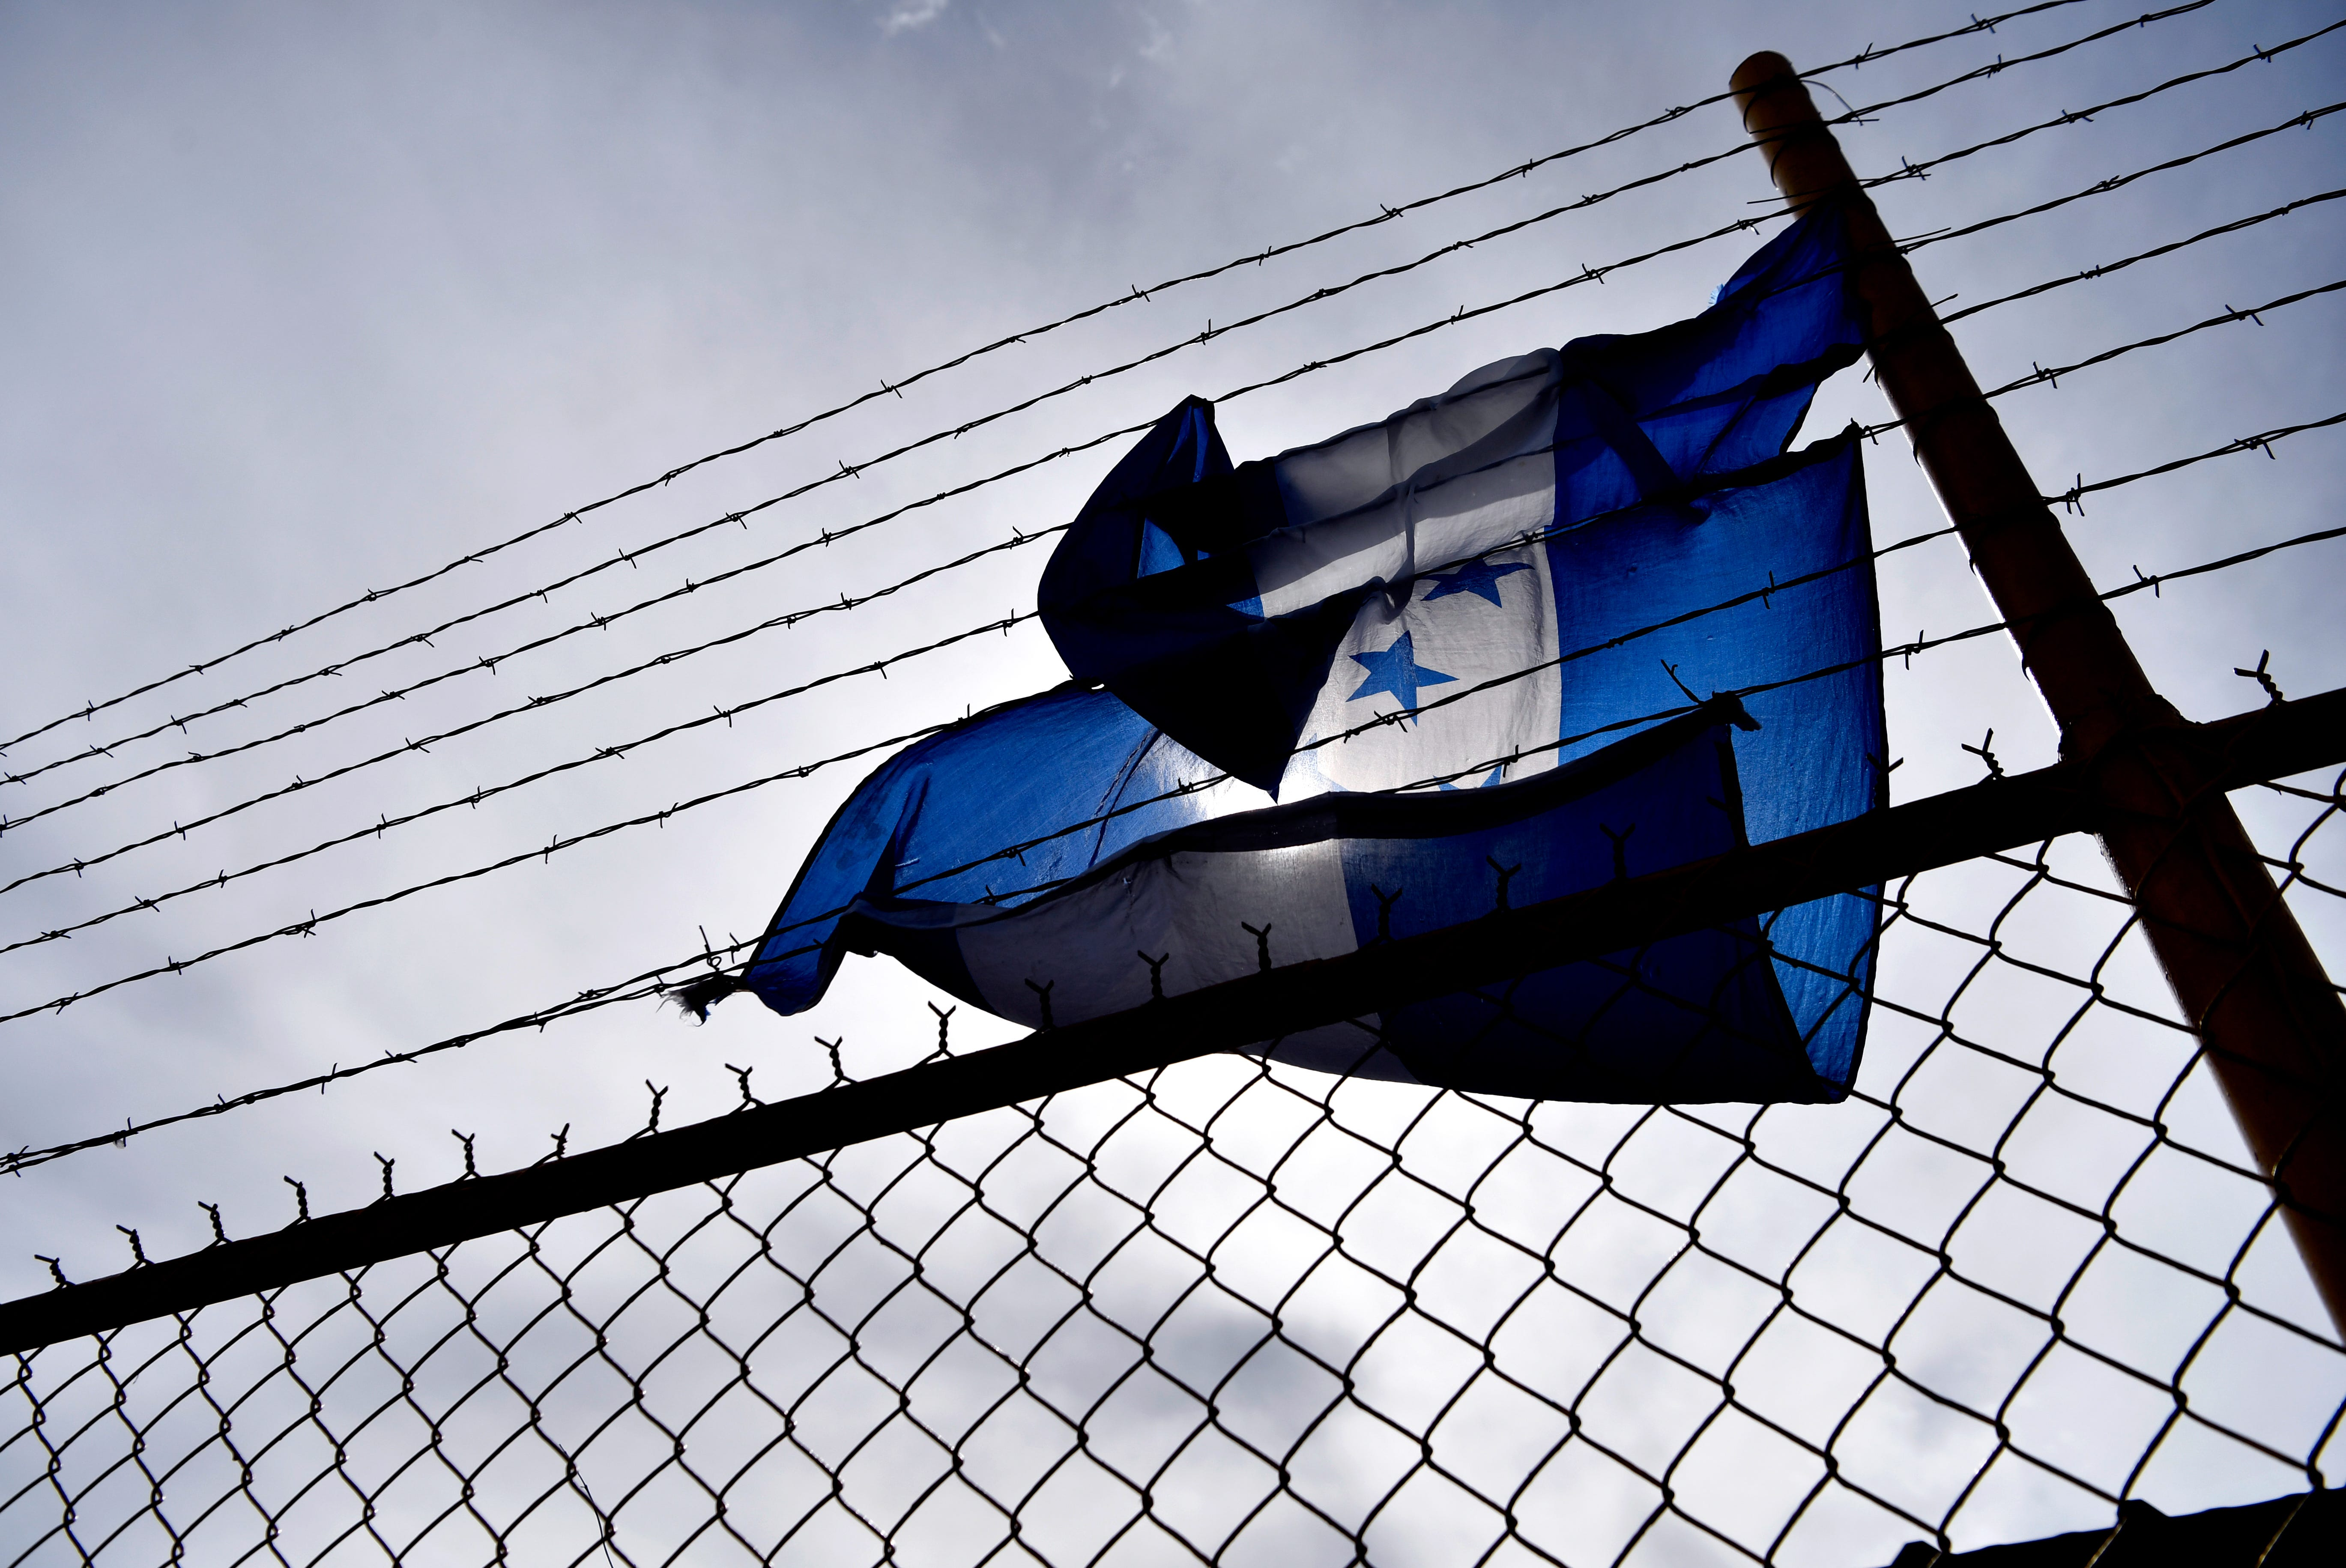 A Honduran flag is caught in the barbed wire surrounding the Migrant Hostel in Piedras Negras, Mexico Thursday Feb. 7, 2019. The former factory has been is a holding center for 1,800 Central American young adults and families with children. Many came from Honduras, hoping to escape the gang violence there which they say has taken over the country.